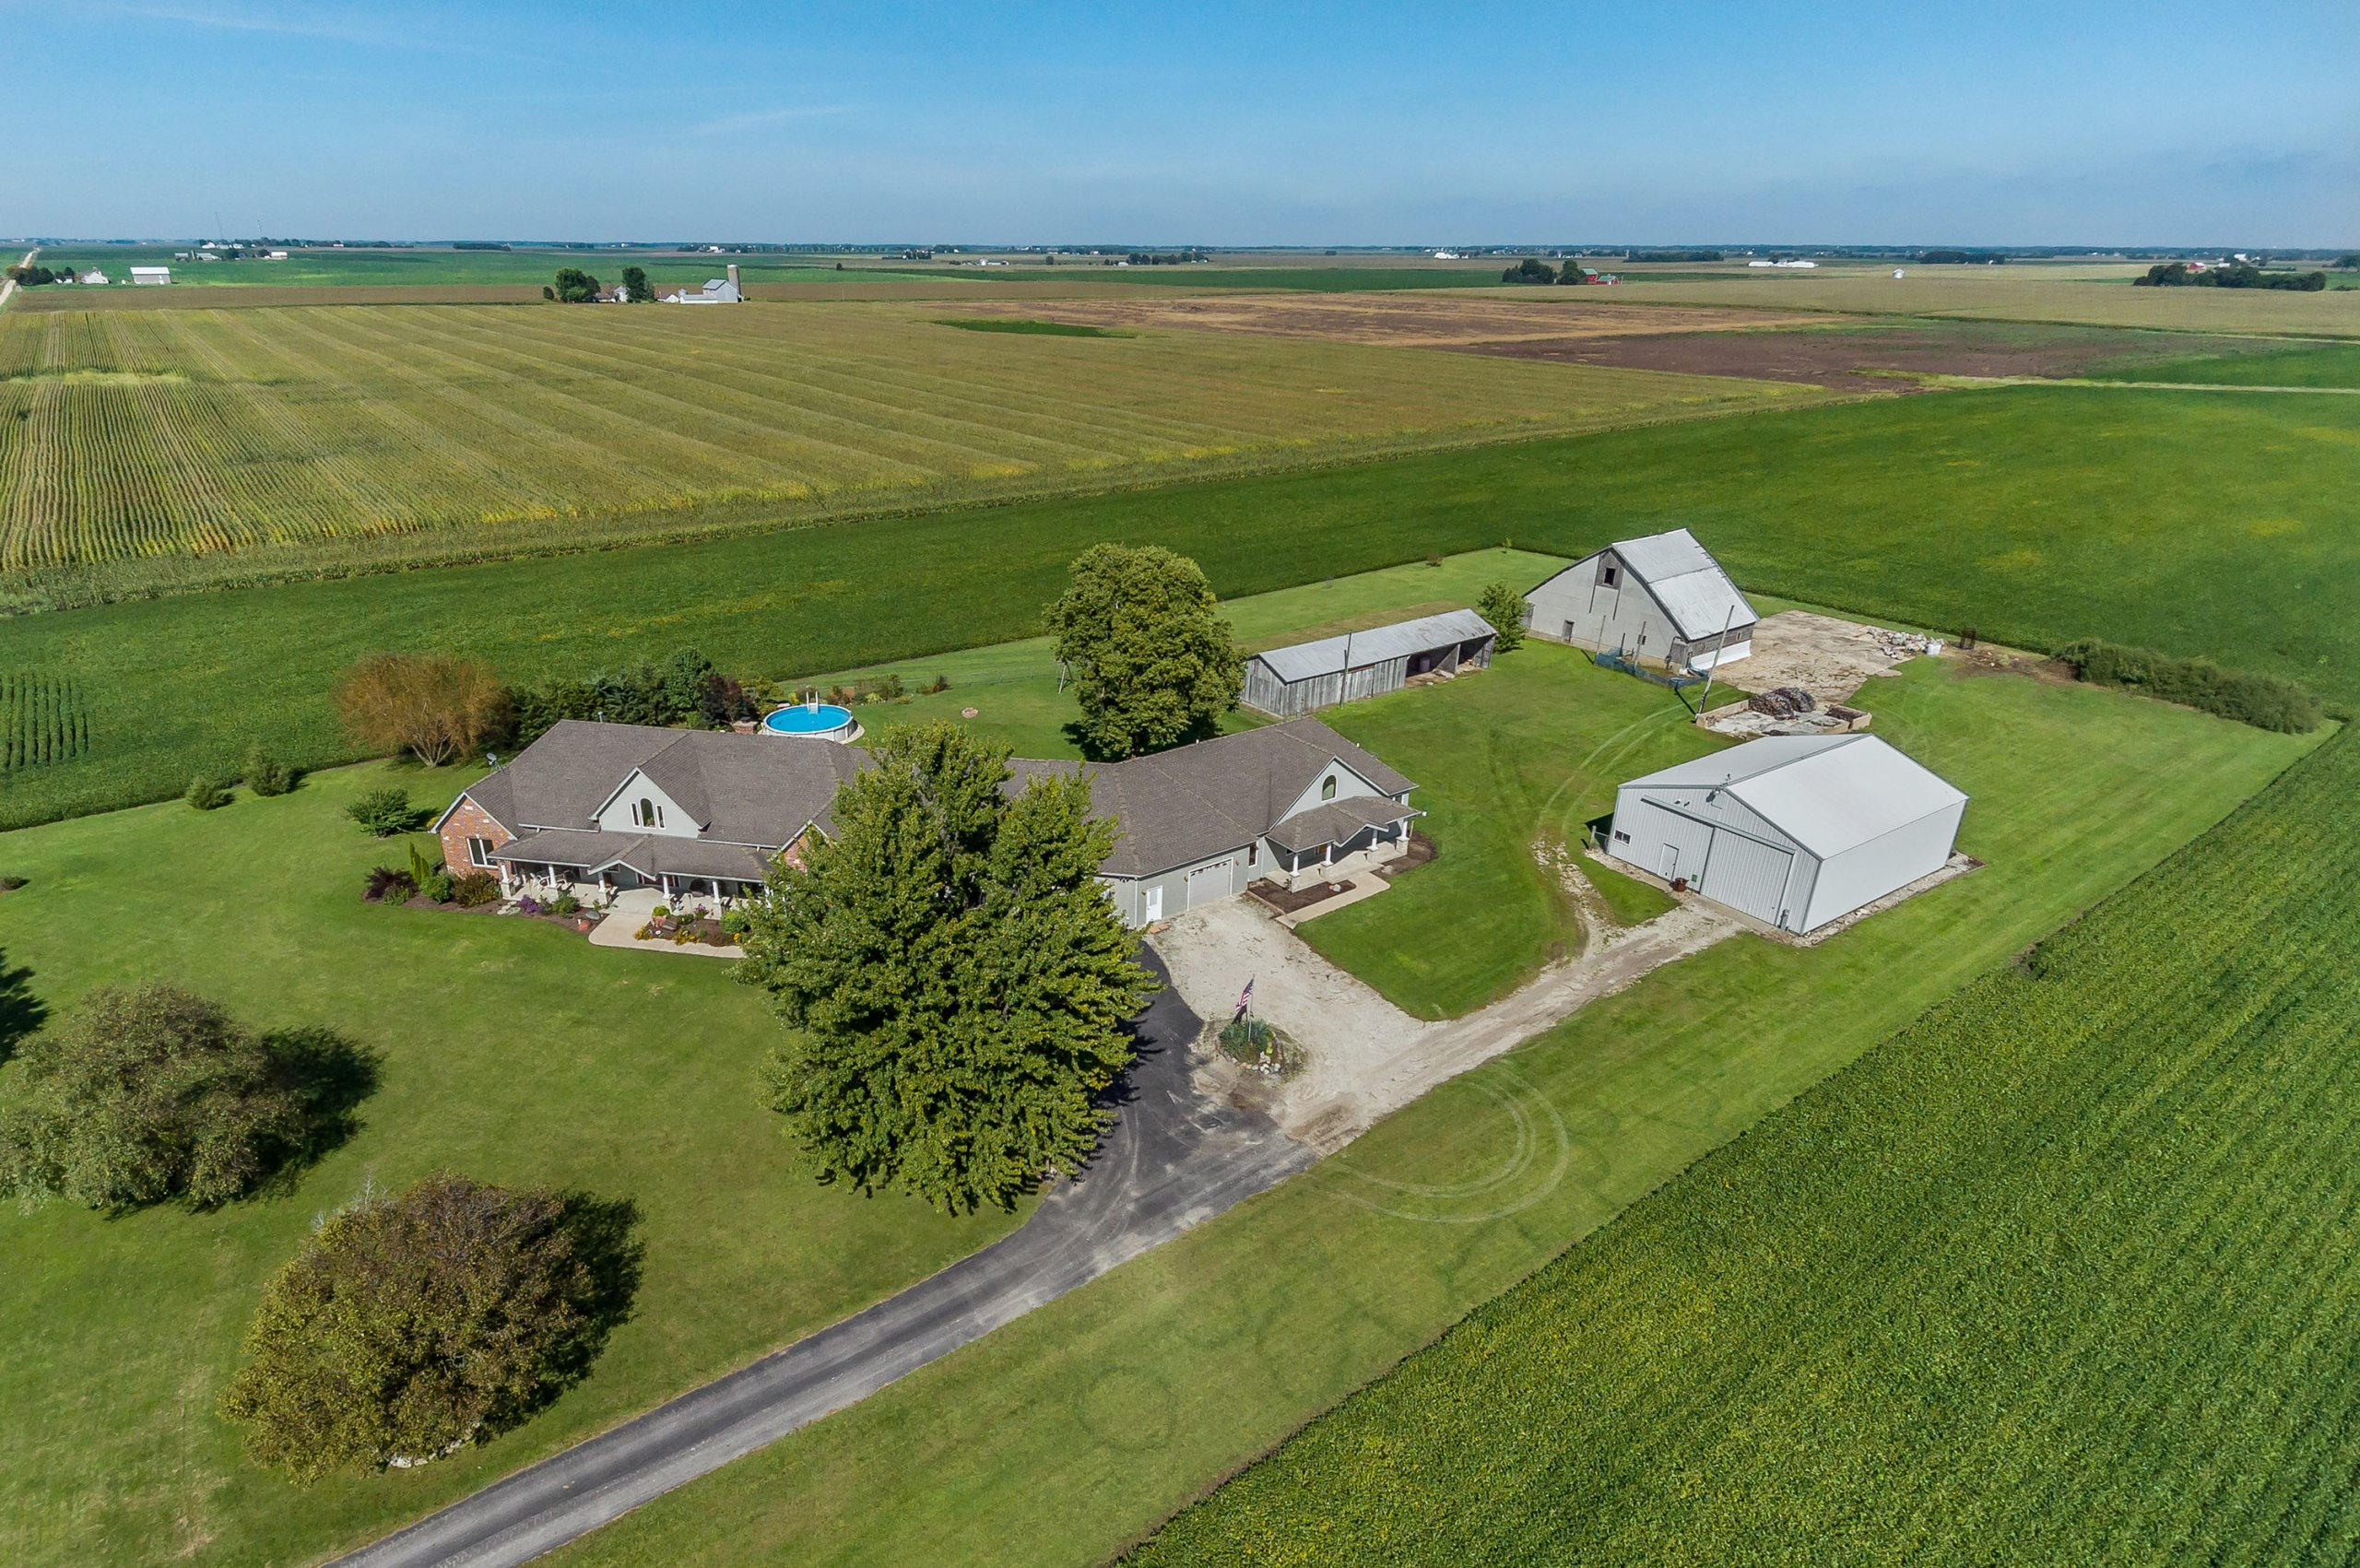 Drone aerial photo of large country estate in Somonauk, Illinois.